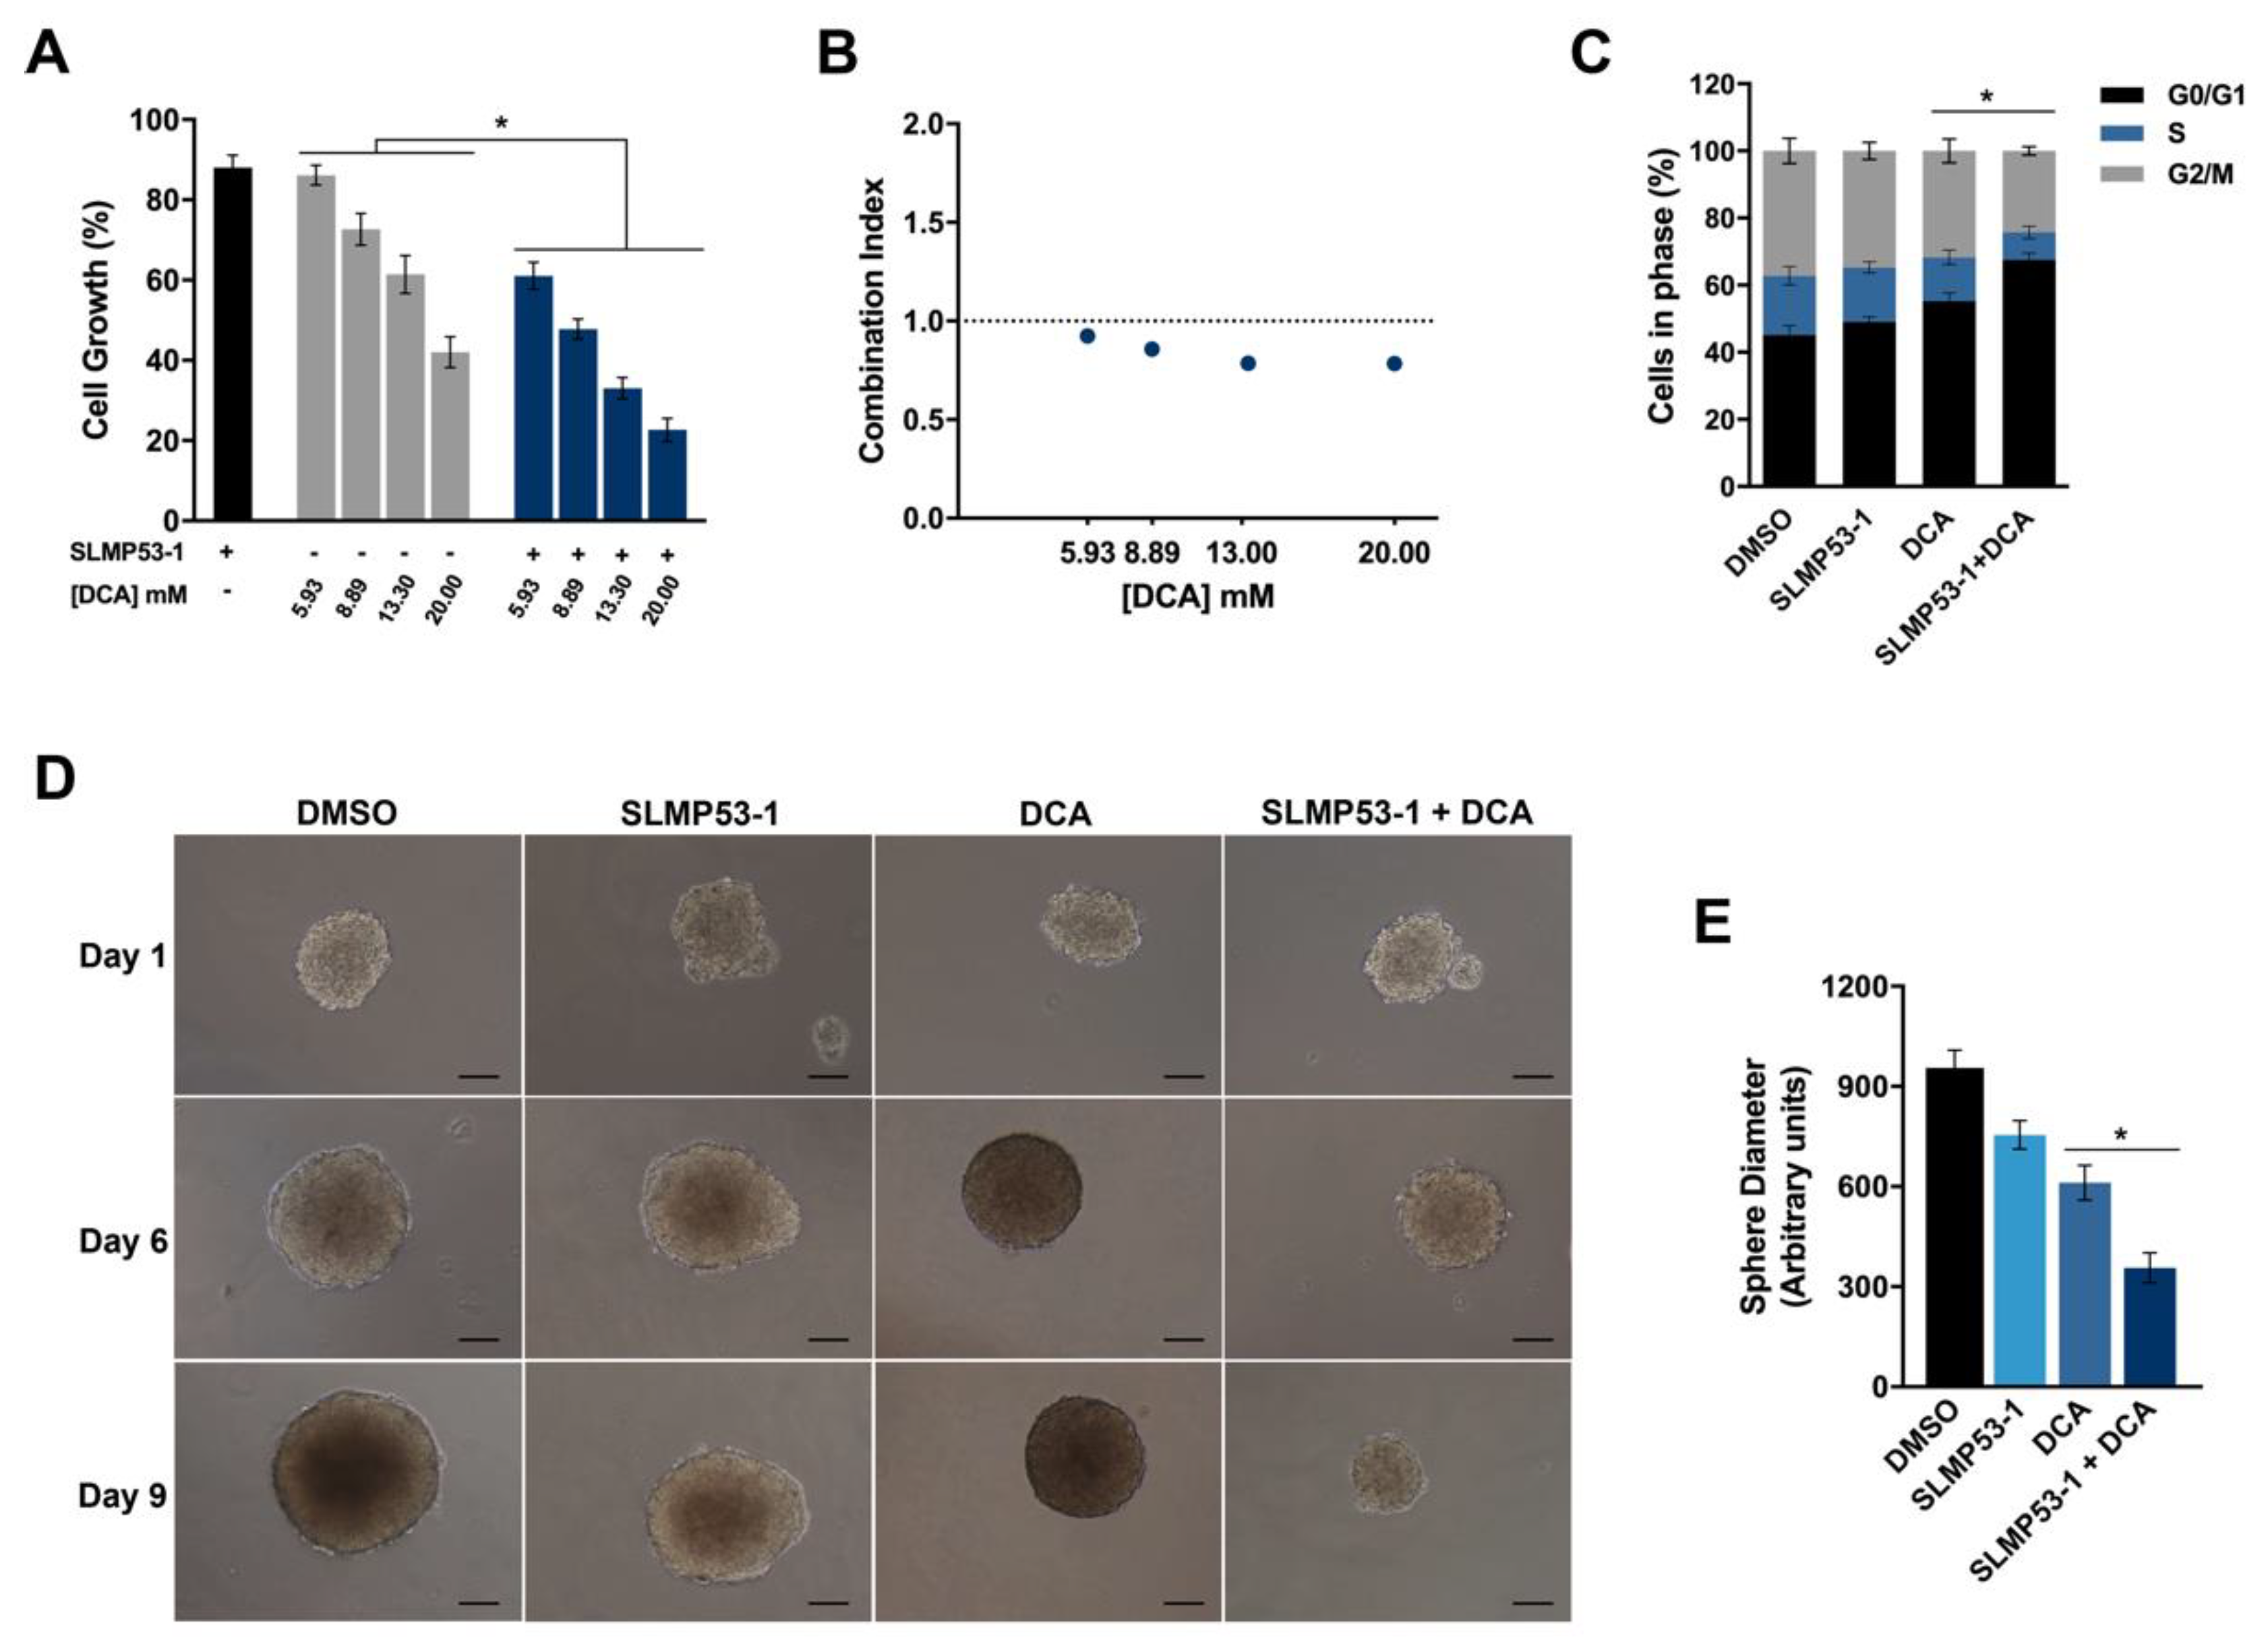 Ijms Free Full Text Slmp53 1 Inhibits Tumor Cell Growth Through Regulation Of Glucose Metabolism And Angiogenesis In A P53 Dependent Manner Html